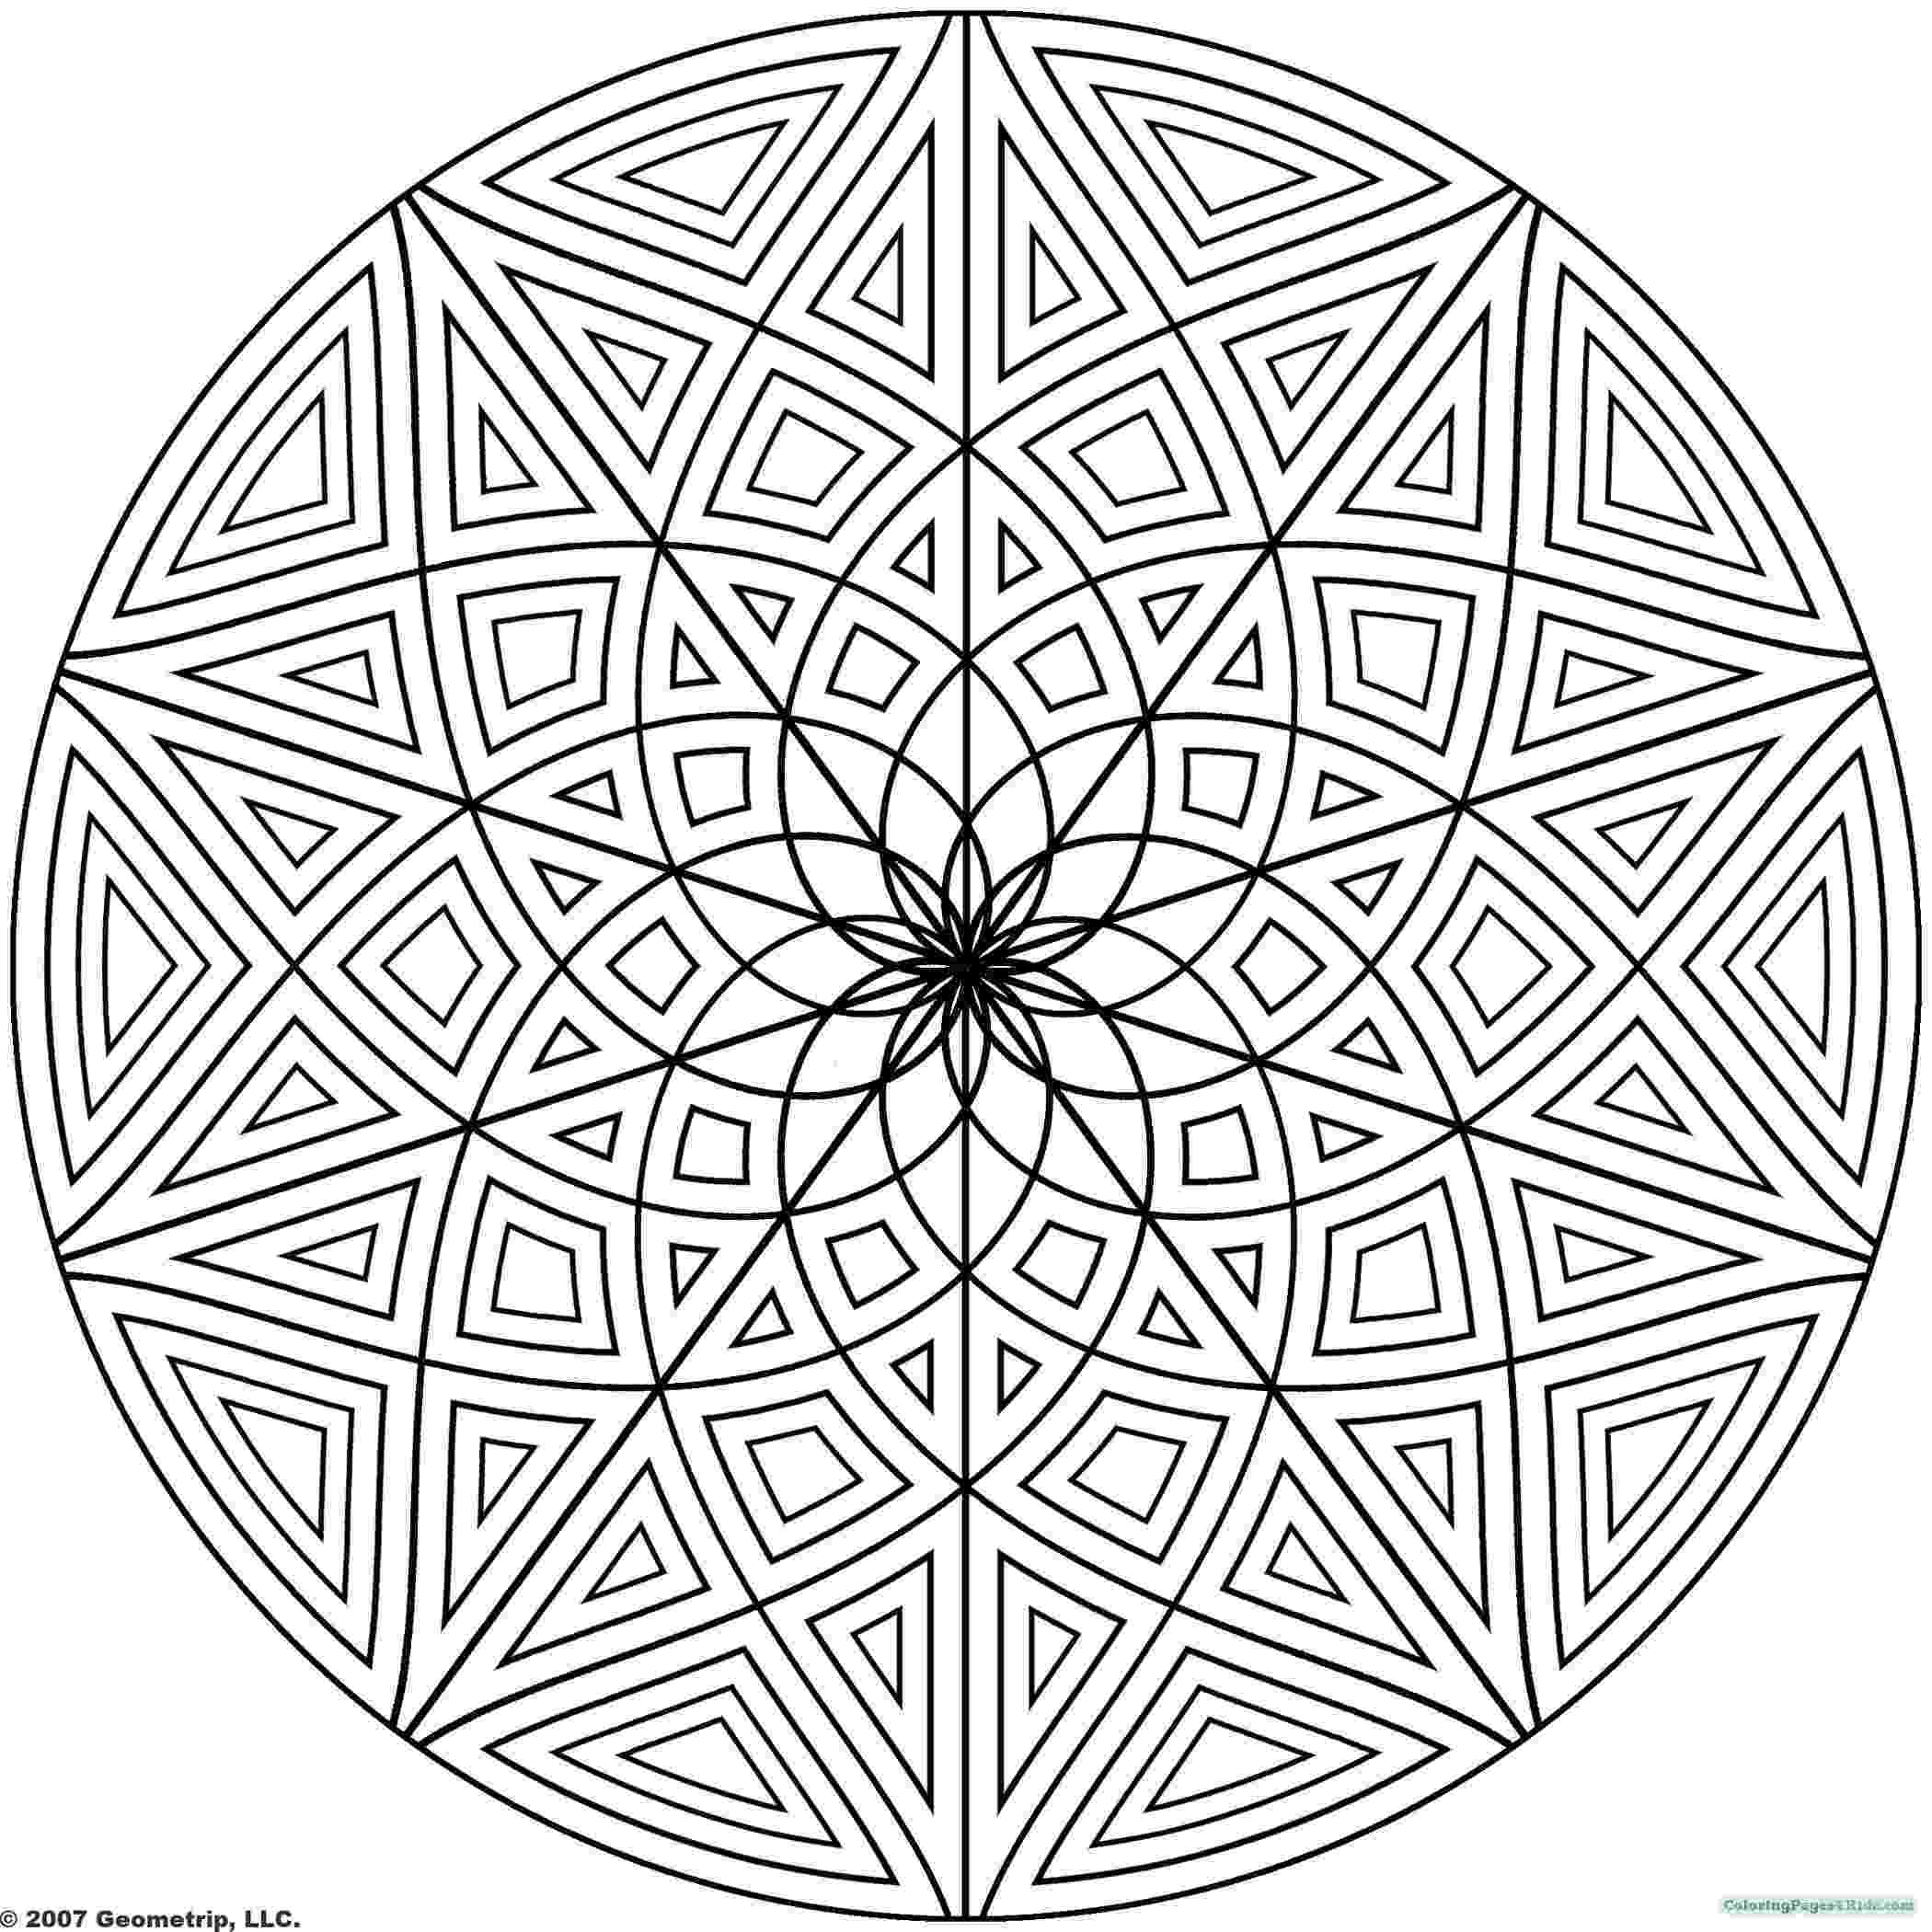 hard design coloring pages hard design coloring pages getcoloringpagescom pages design coloring hard